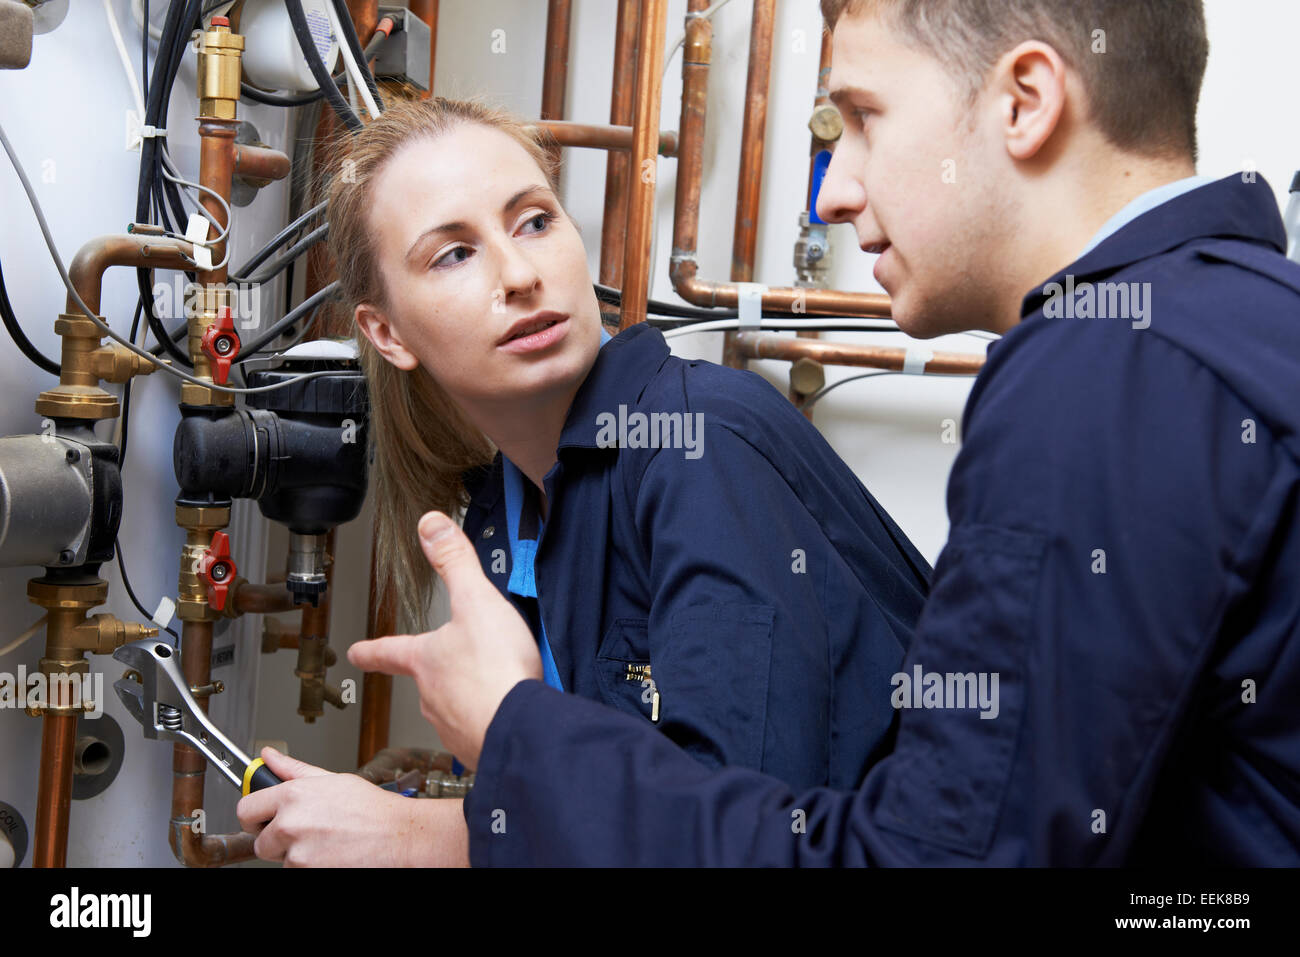 Female Trainee Plumber Working On Central Heating Boiler - Stock Image